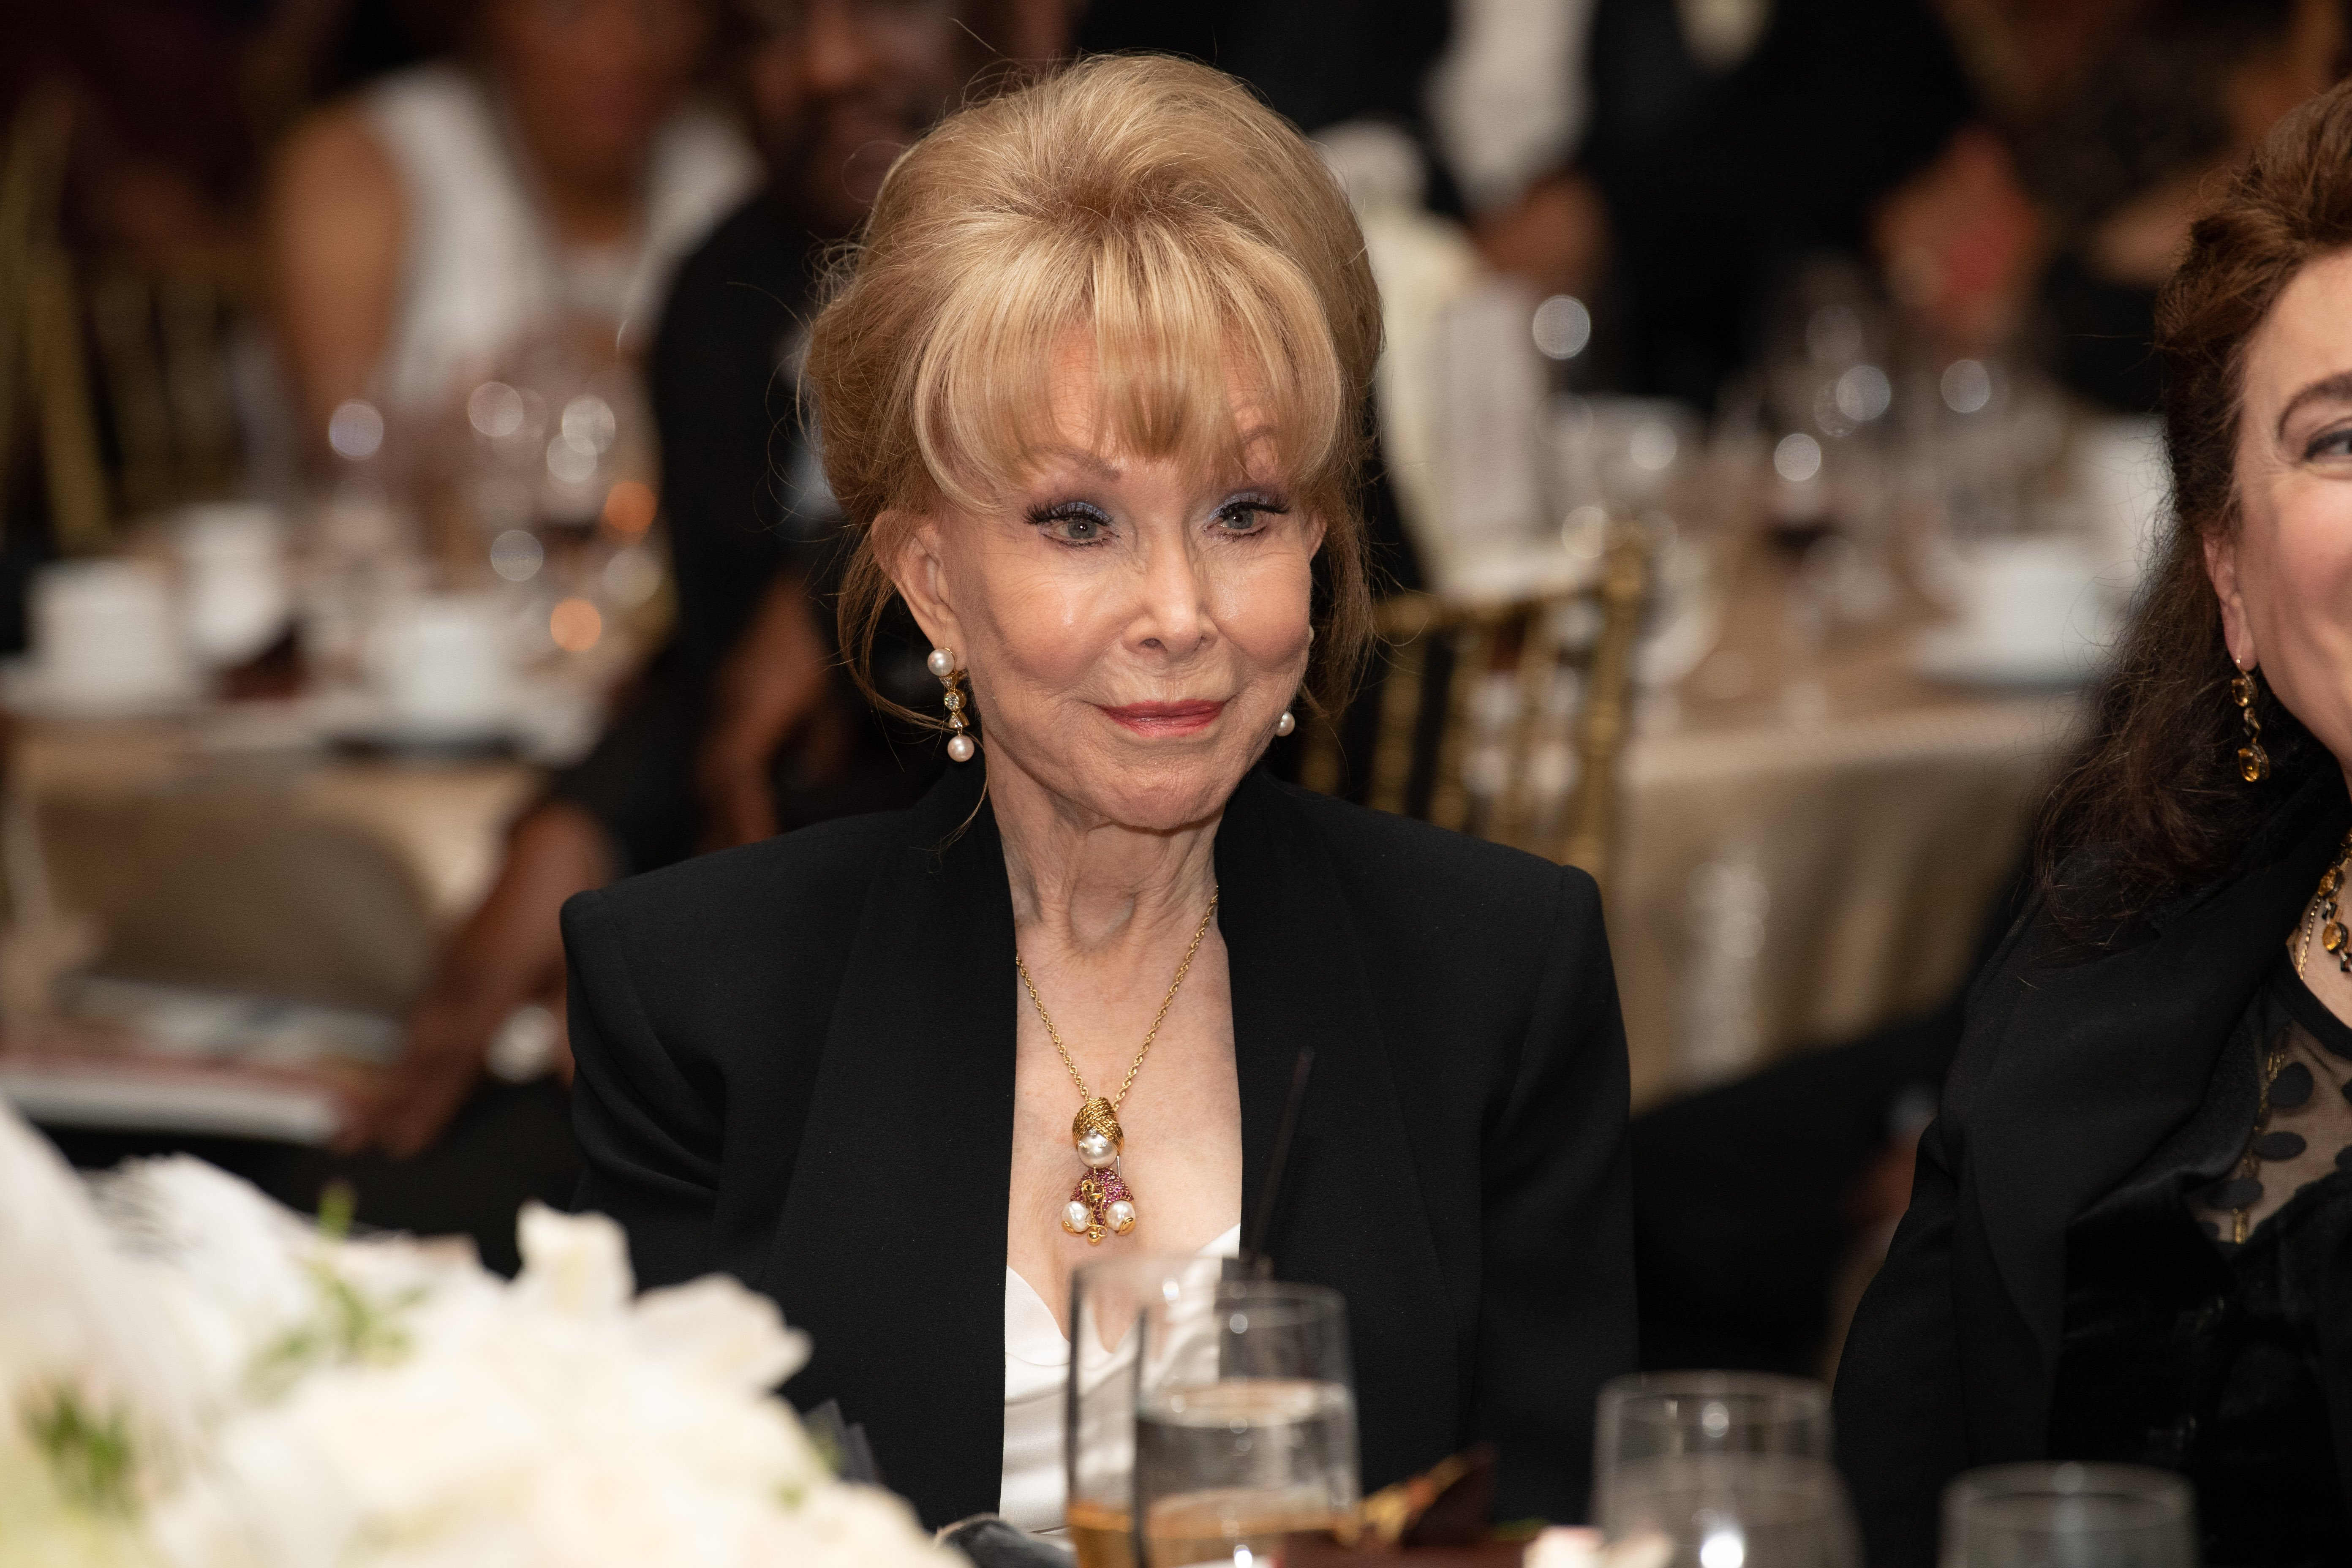 Barbara Eden attends the YWCA Greater Los Angeles 125th Anniversary Gala in Hollywood, California on November 1, 2018 | Photo: Getty images